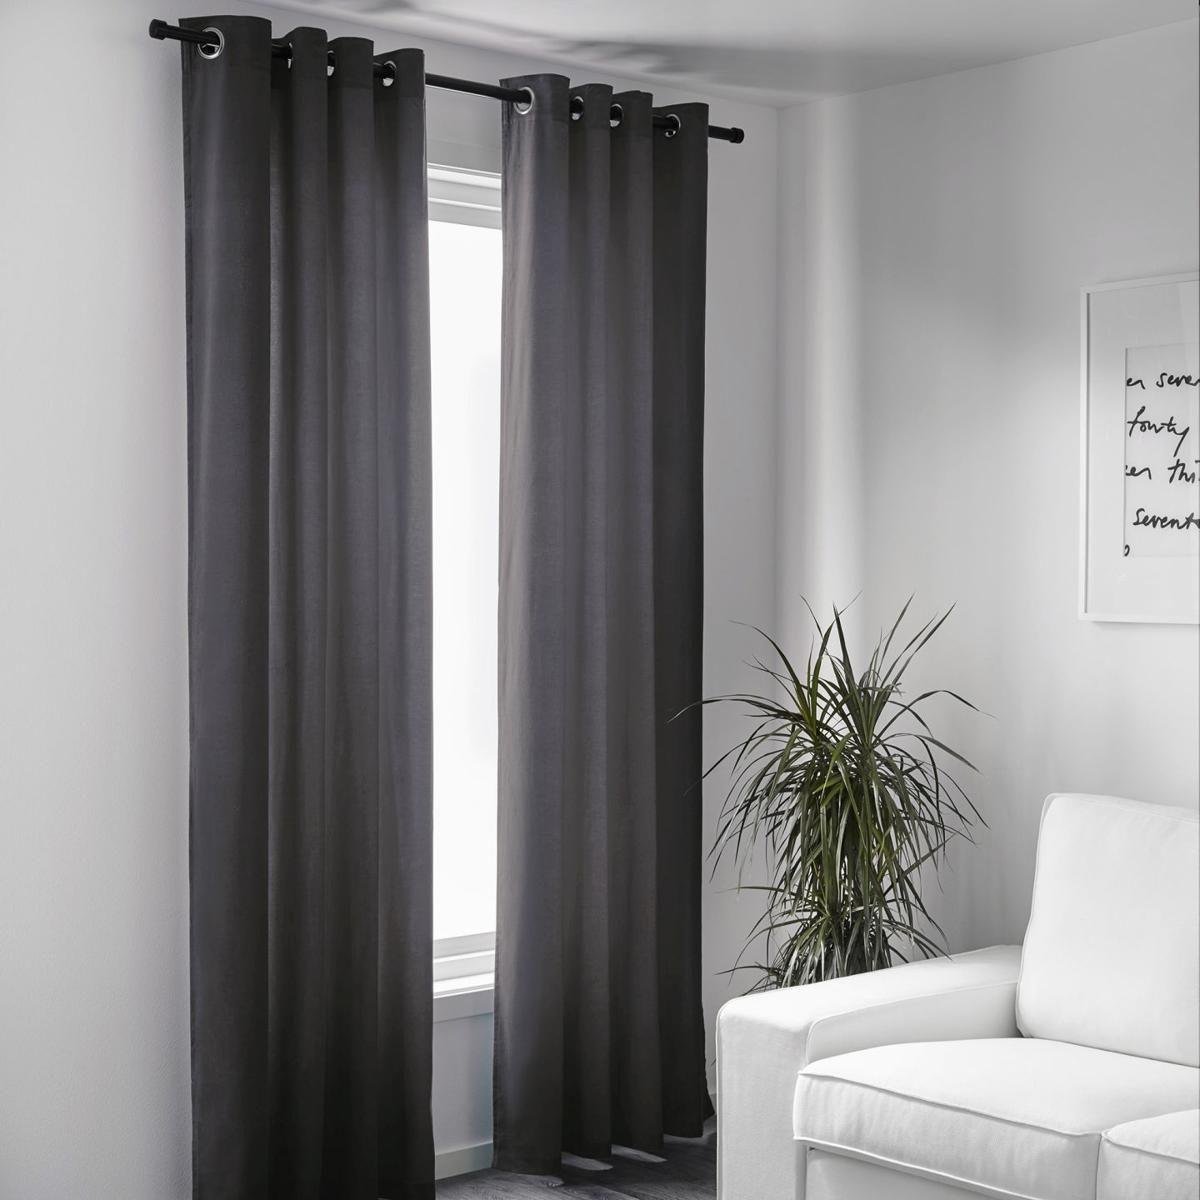 of omaha window budget best ambiance boo blinds coverings